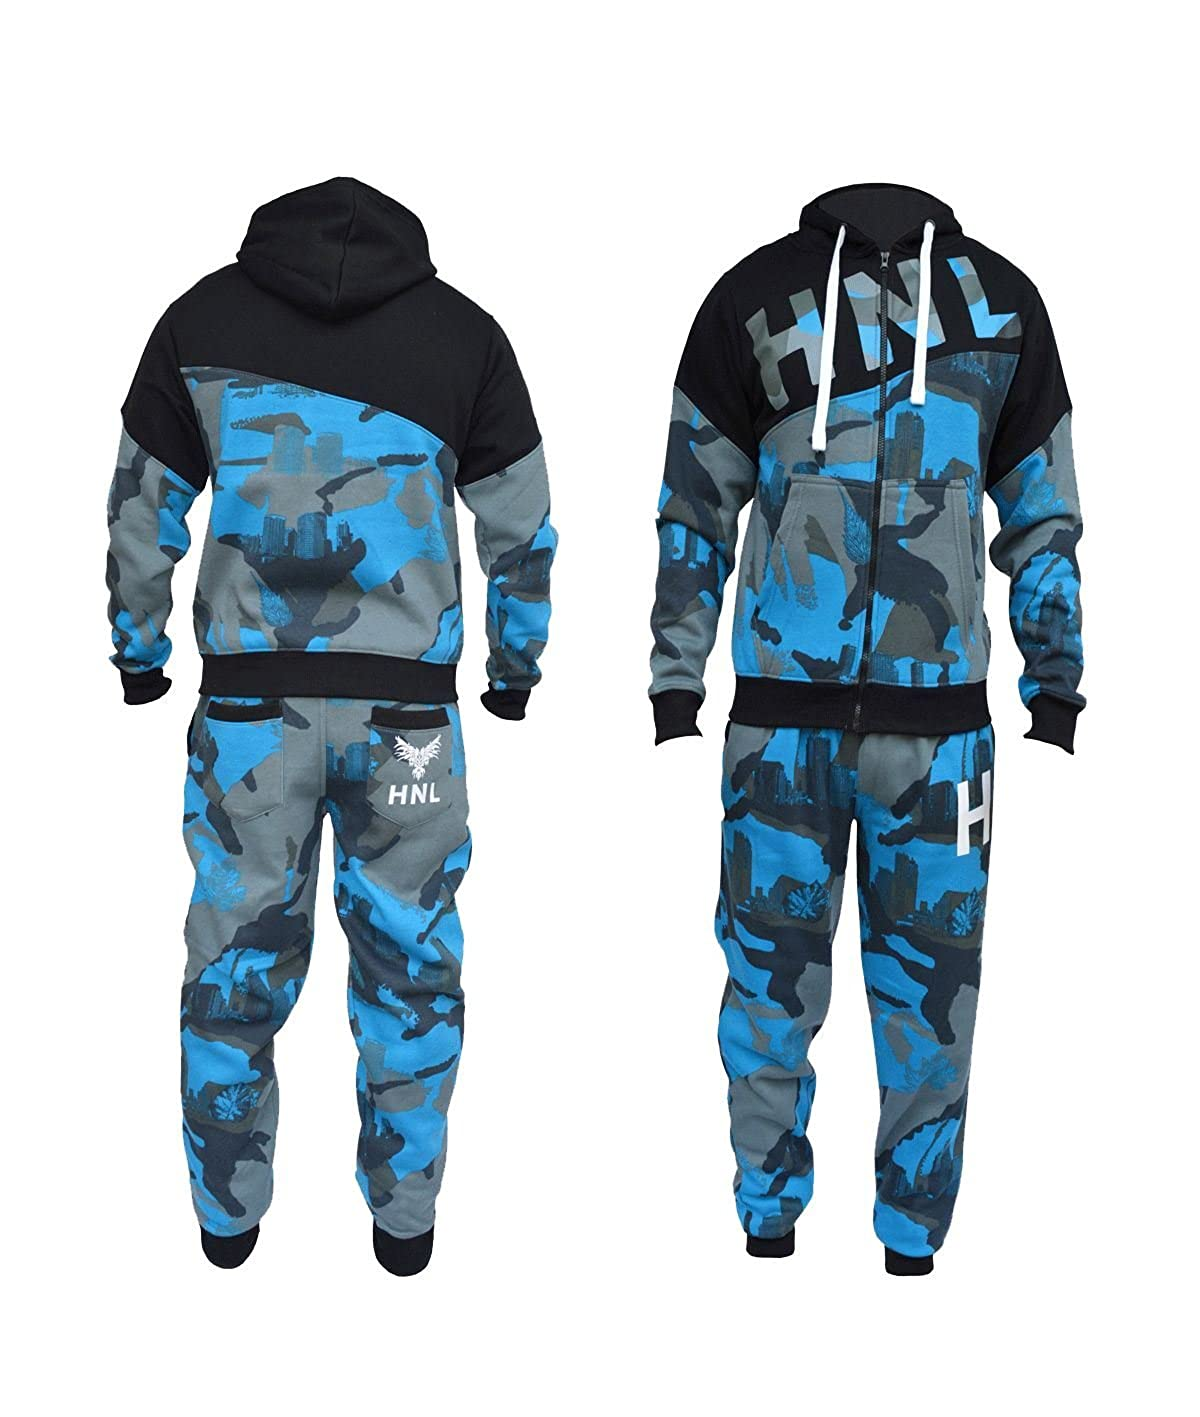 New Mens Boys Designer Zipped Top Bottoms Jogging Suits Tracksuits S ...